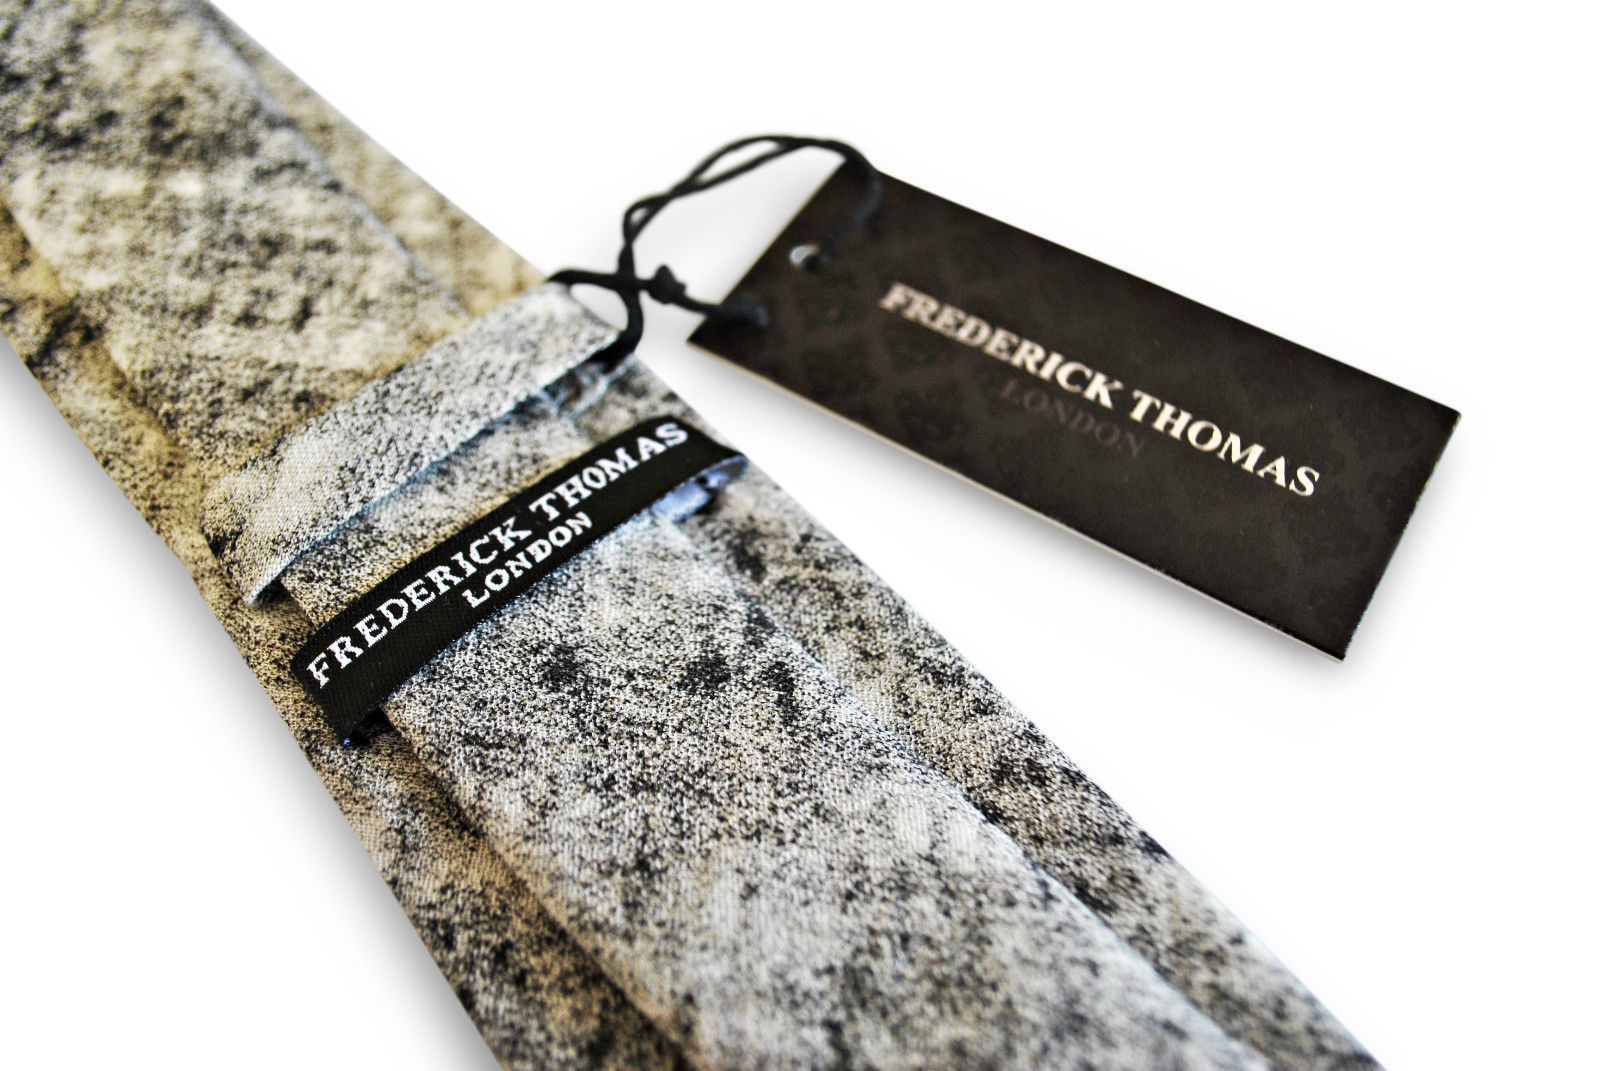 Frederick Thomas mens cotton/linen tie with black and white pattern FT3093